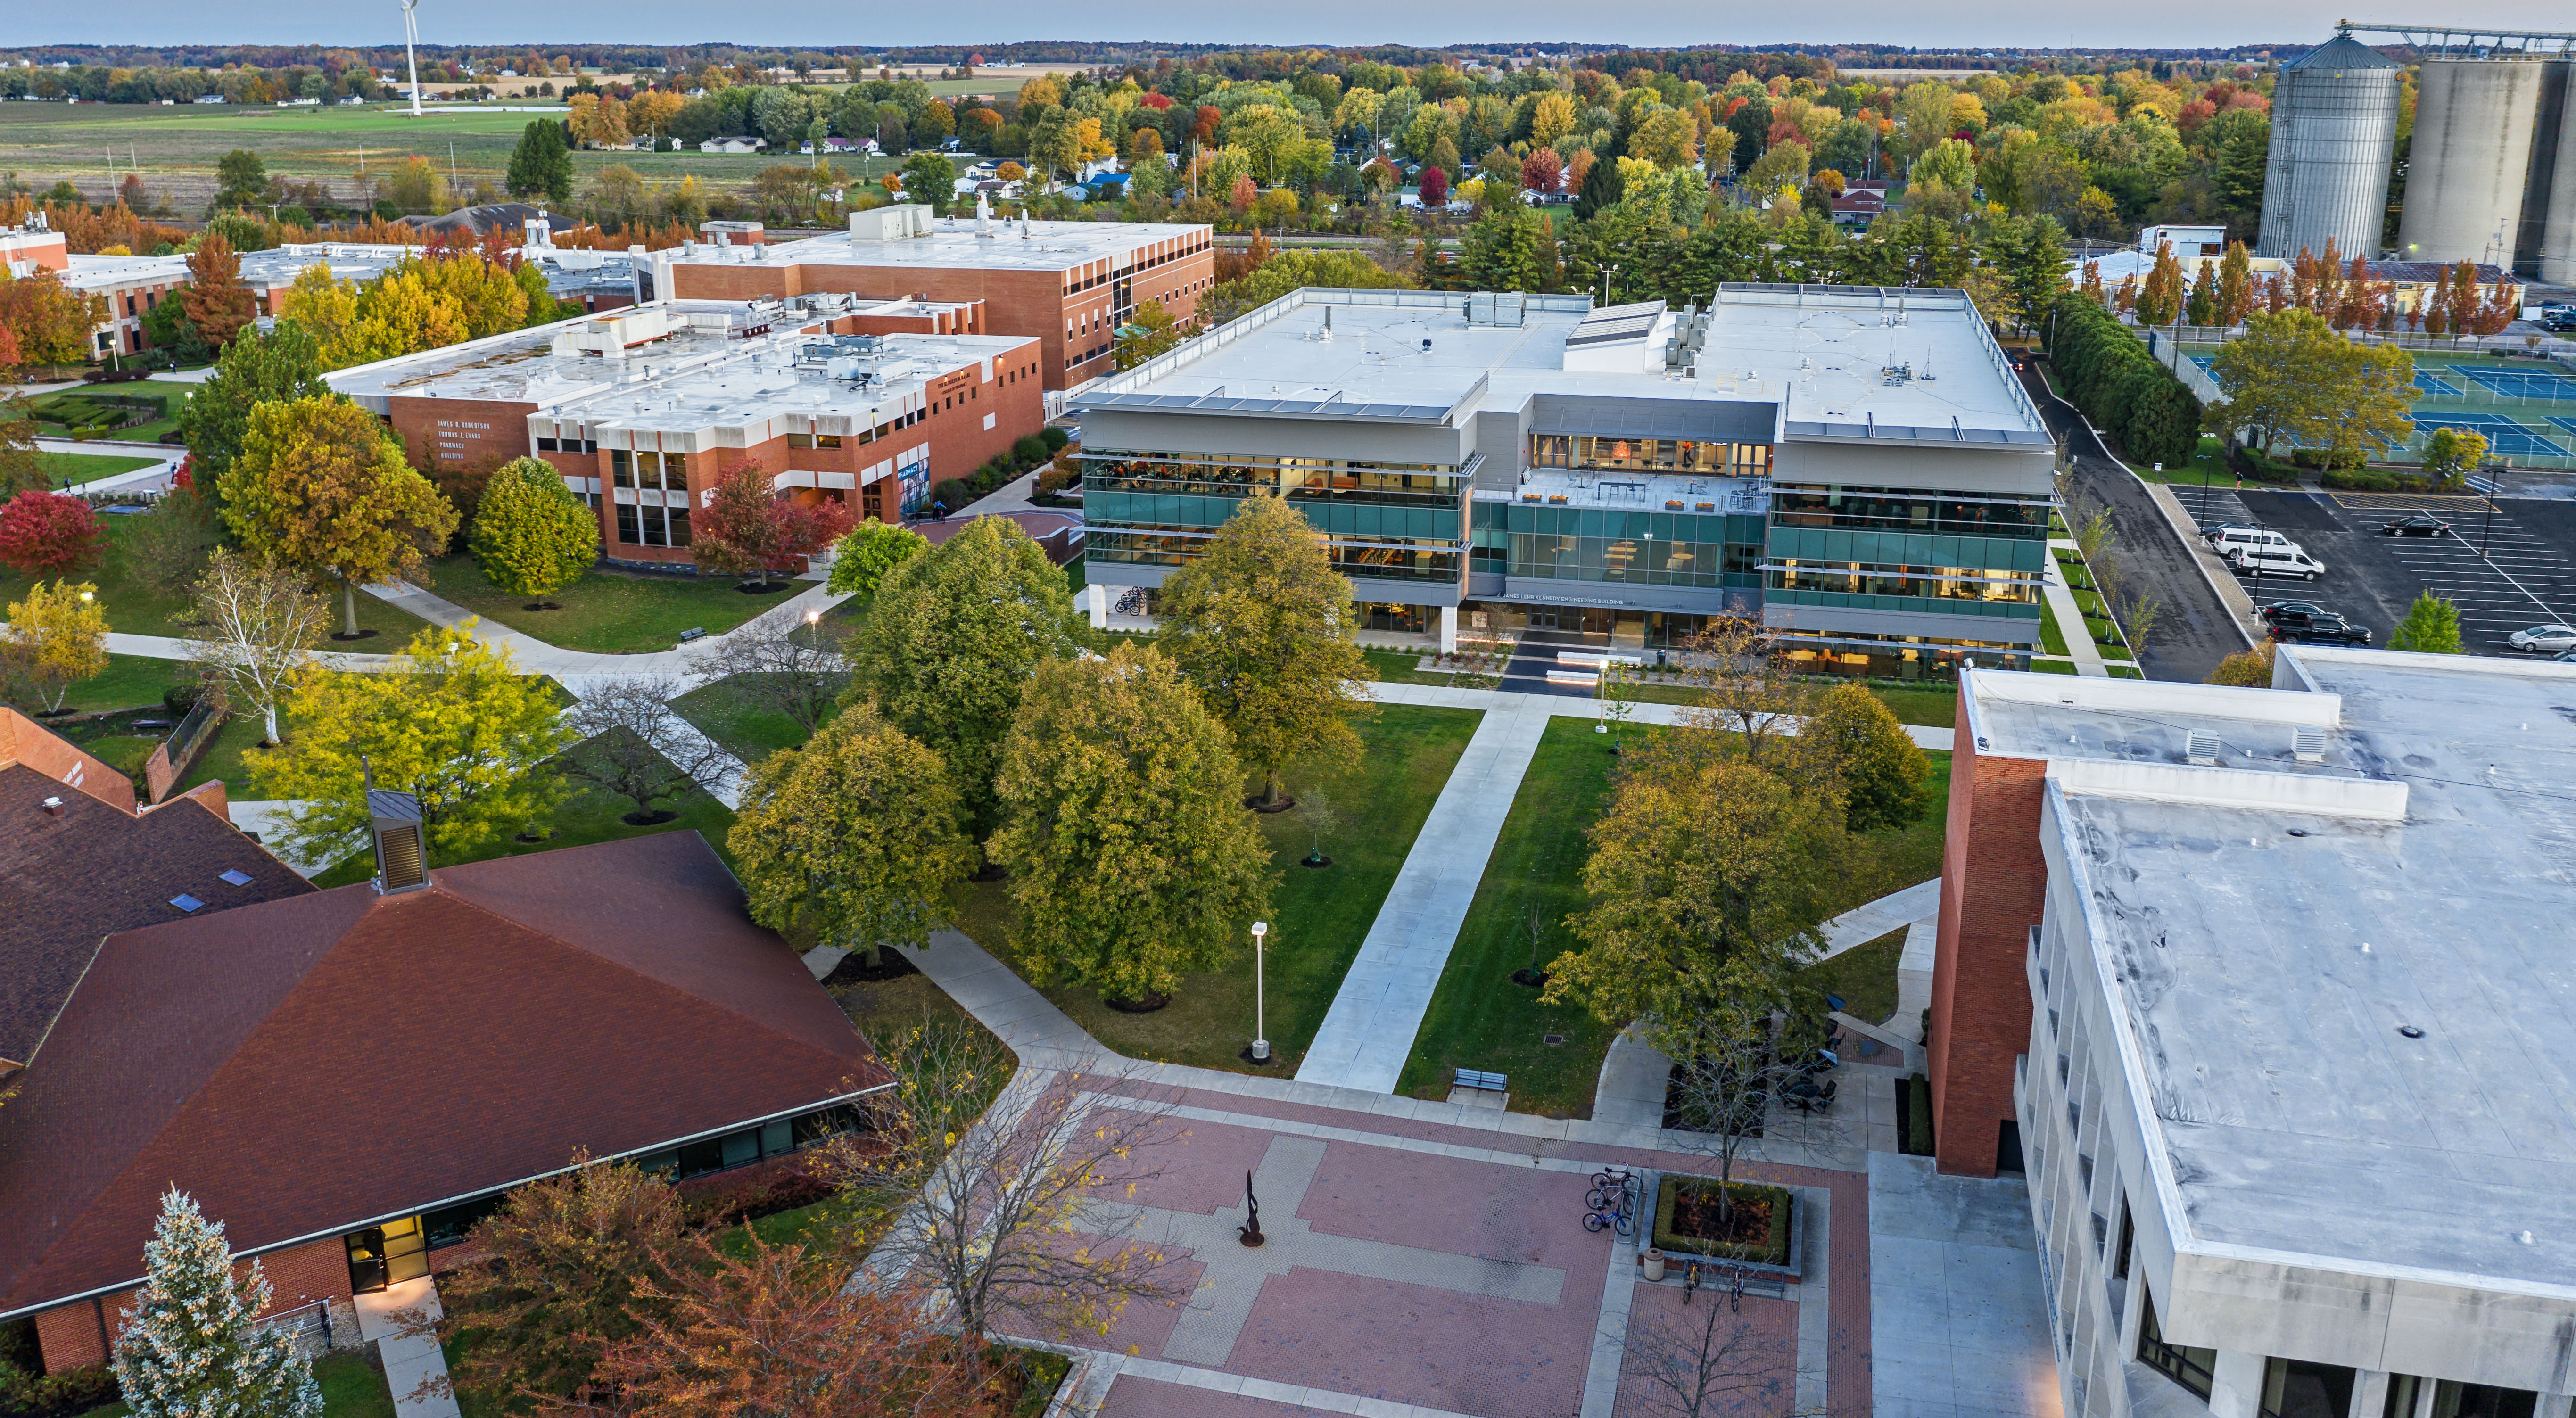 An aerial view of the engineering building's location on campus